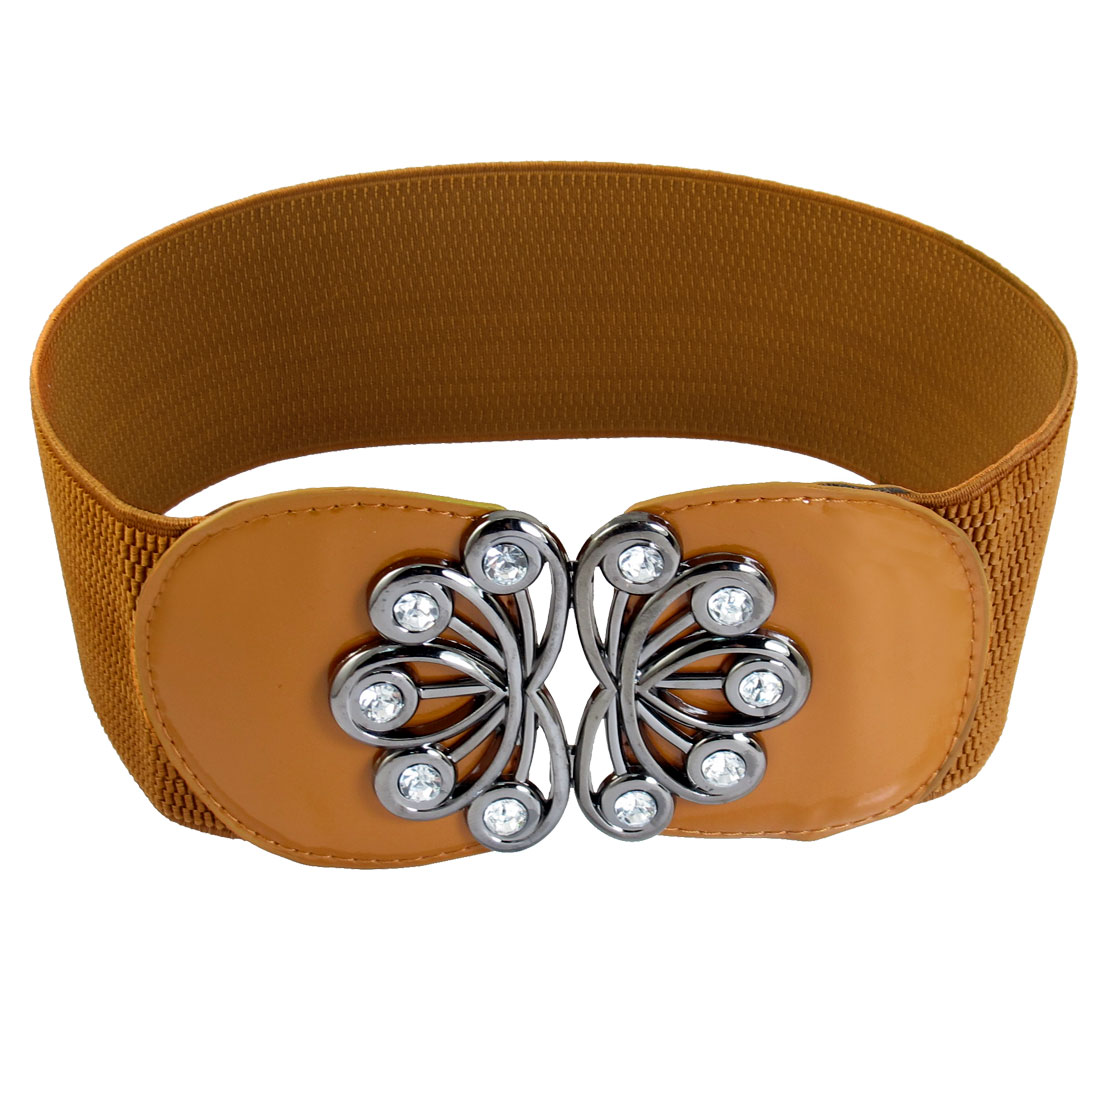 Women Crystal Inlaying Flower Interlocking Buckle Elastic Waist Belt Brown